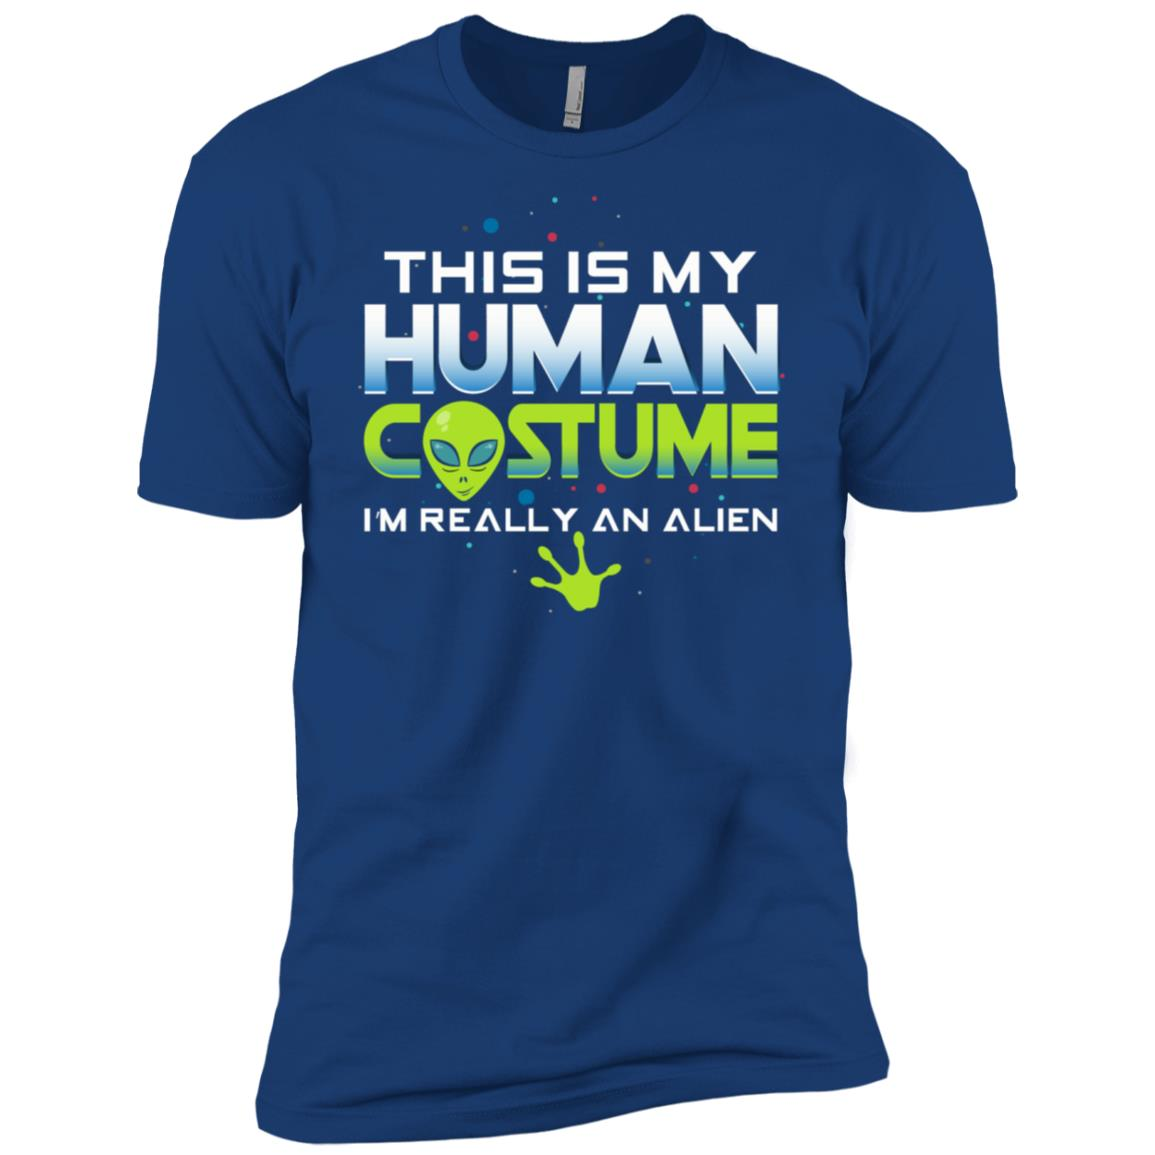 This Is My Human Costume I'm Really An Alien Tee Men Short Sleeve T-Shirt